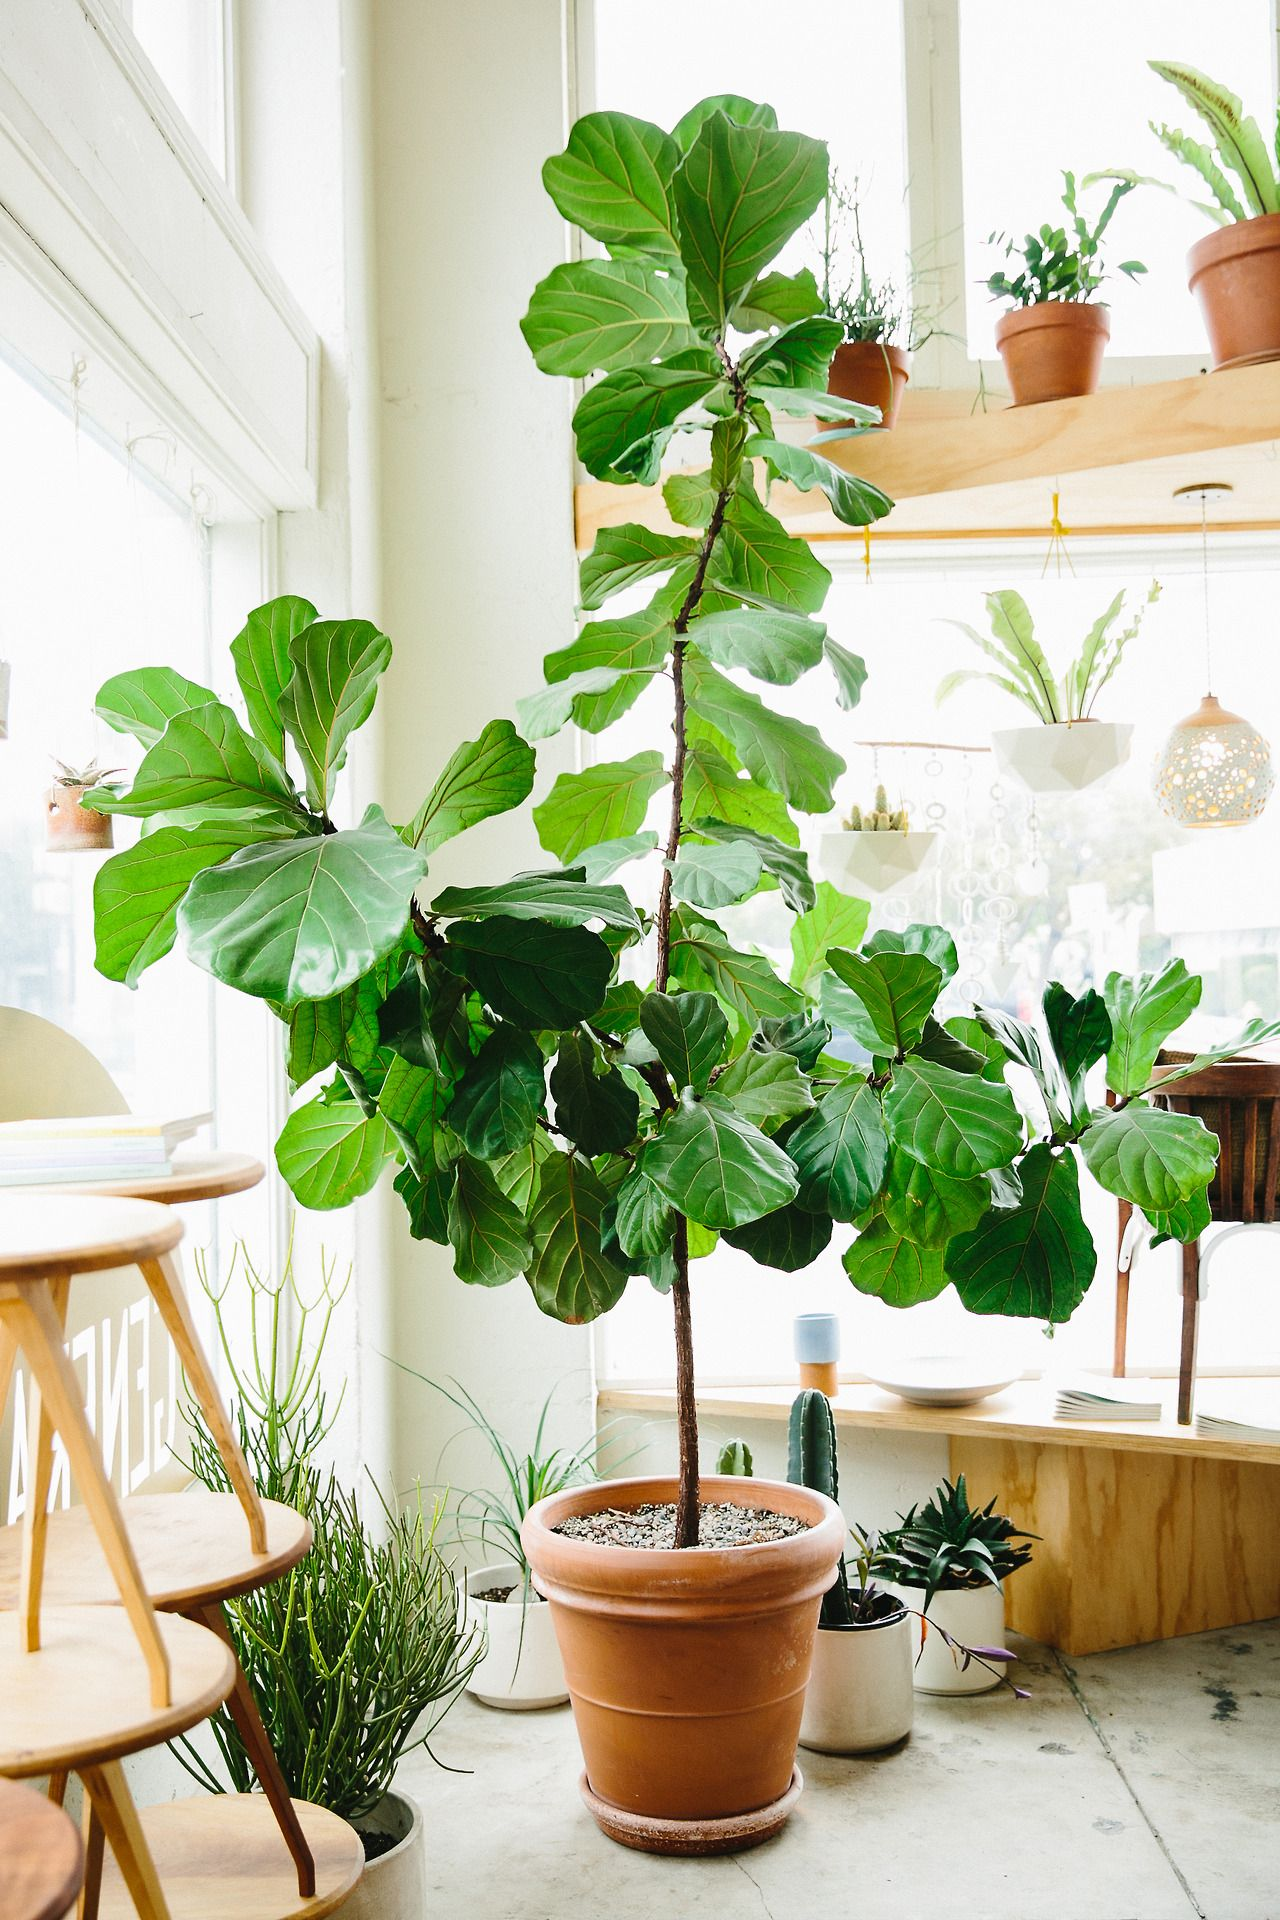 fiddle leaf fig | plants | Pinterest | Fiddle leaf fig, Fiddle ...